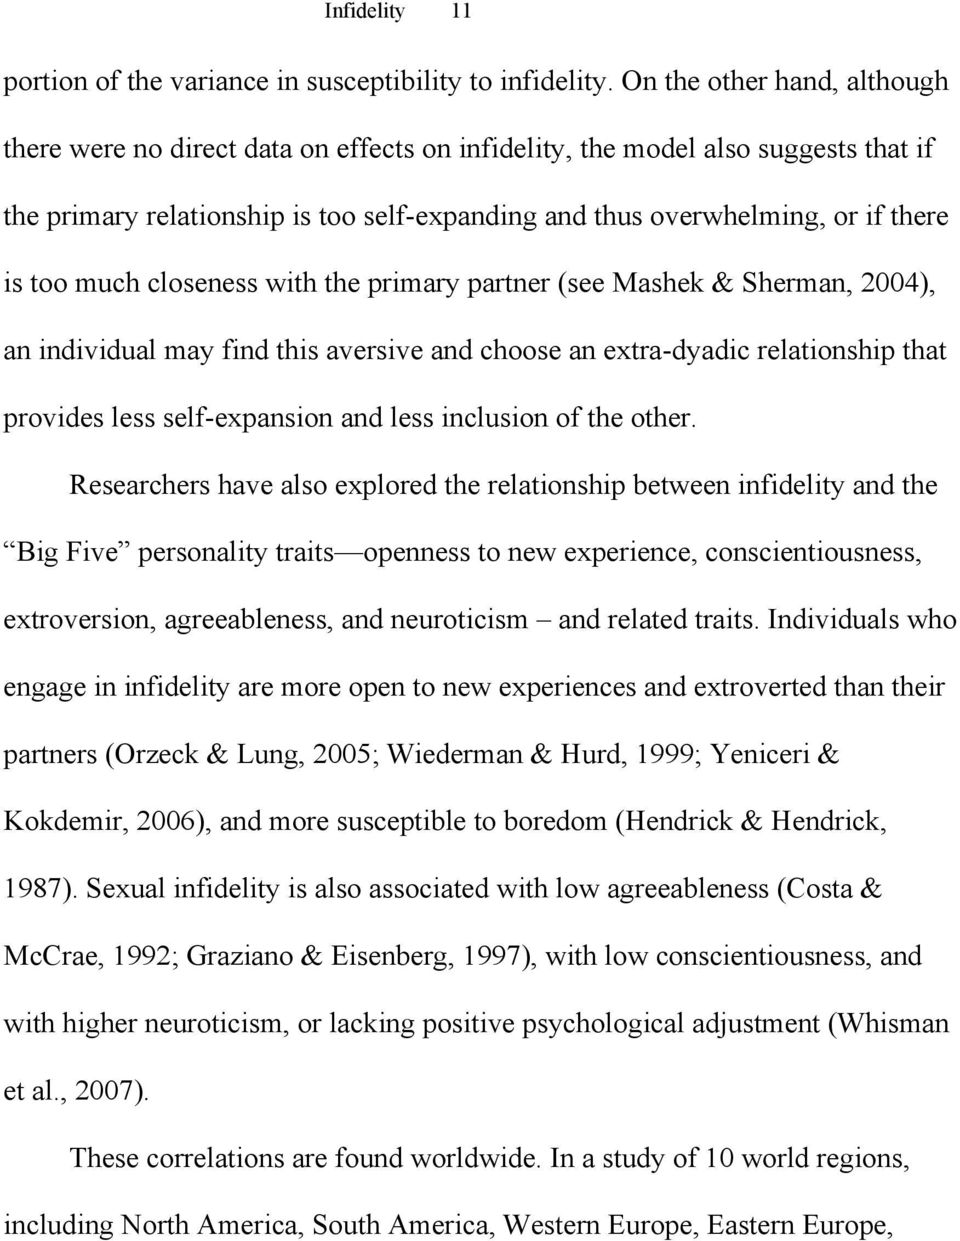 too much closeness with the primary partner (see Mashek & Sherman, 2004), an individual may find this aversive and choose an extra-dyadic relationship that provides less self-expansion and less